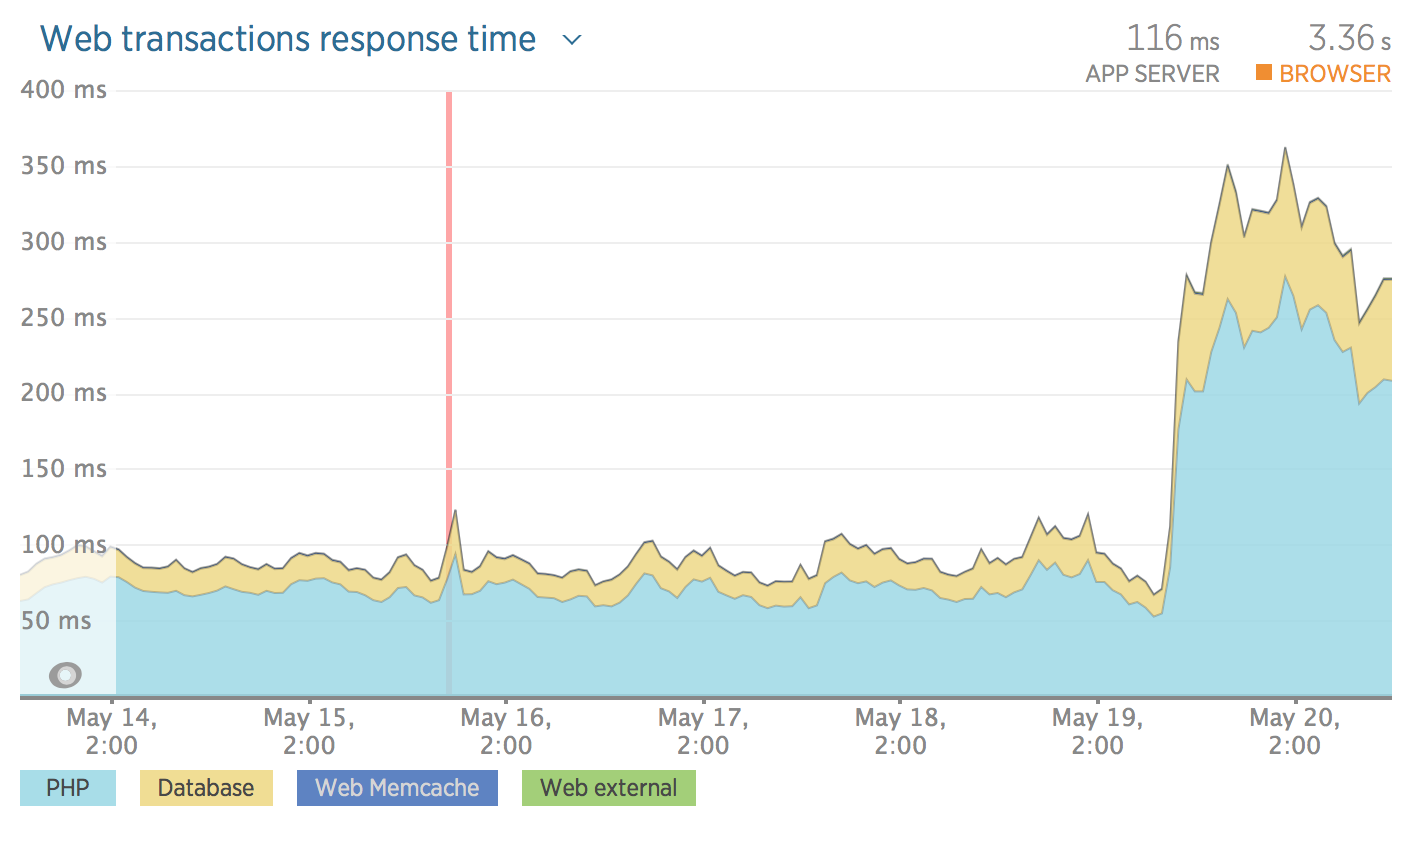 web transactions response time